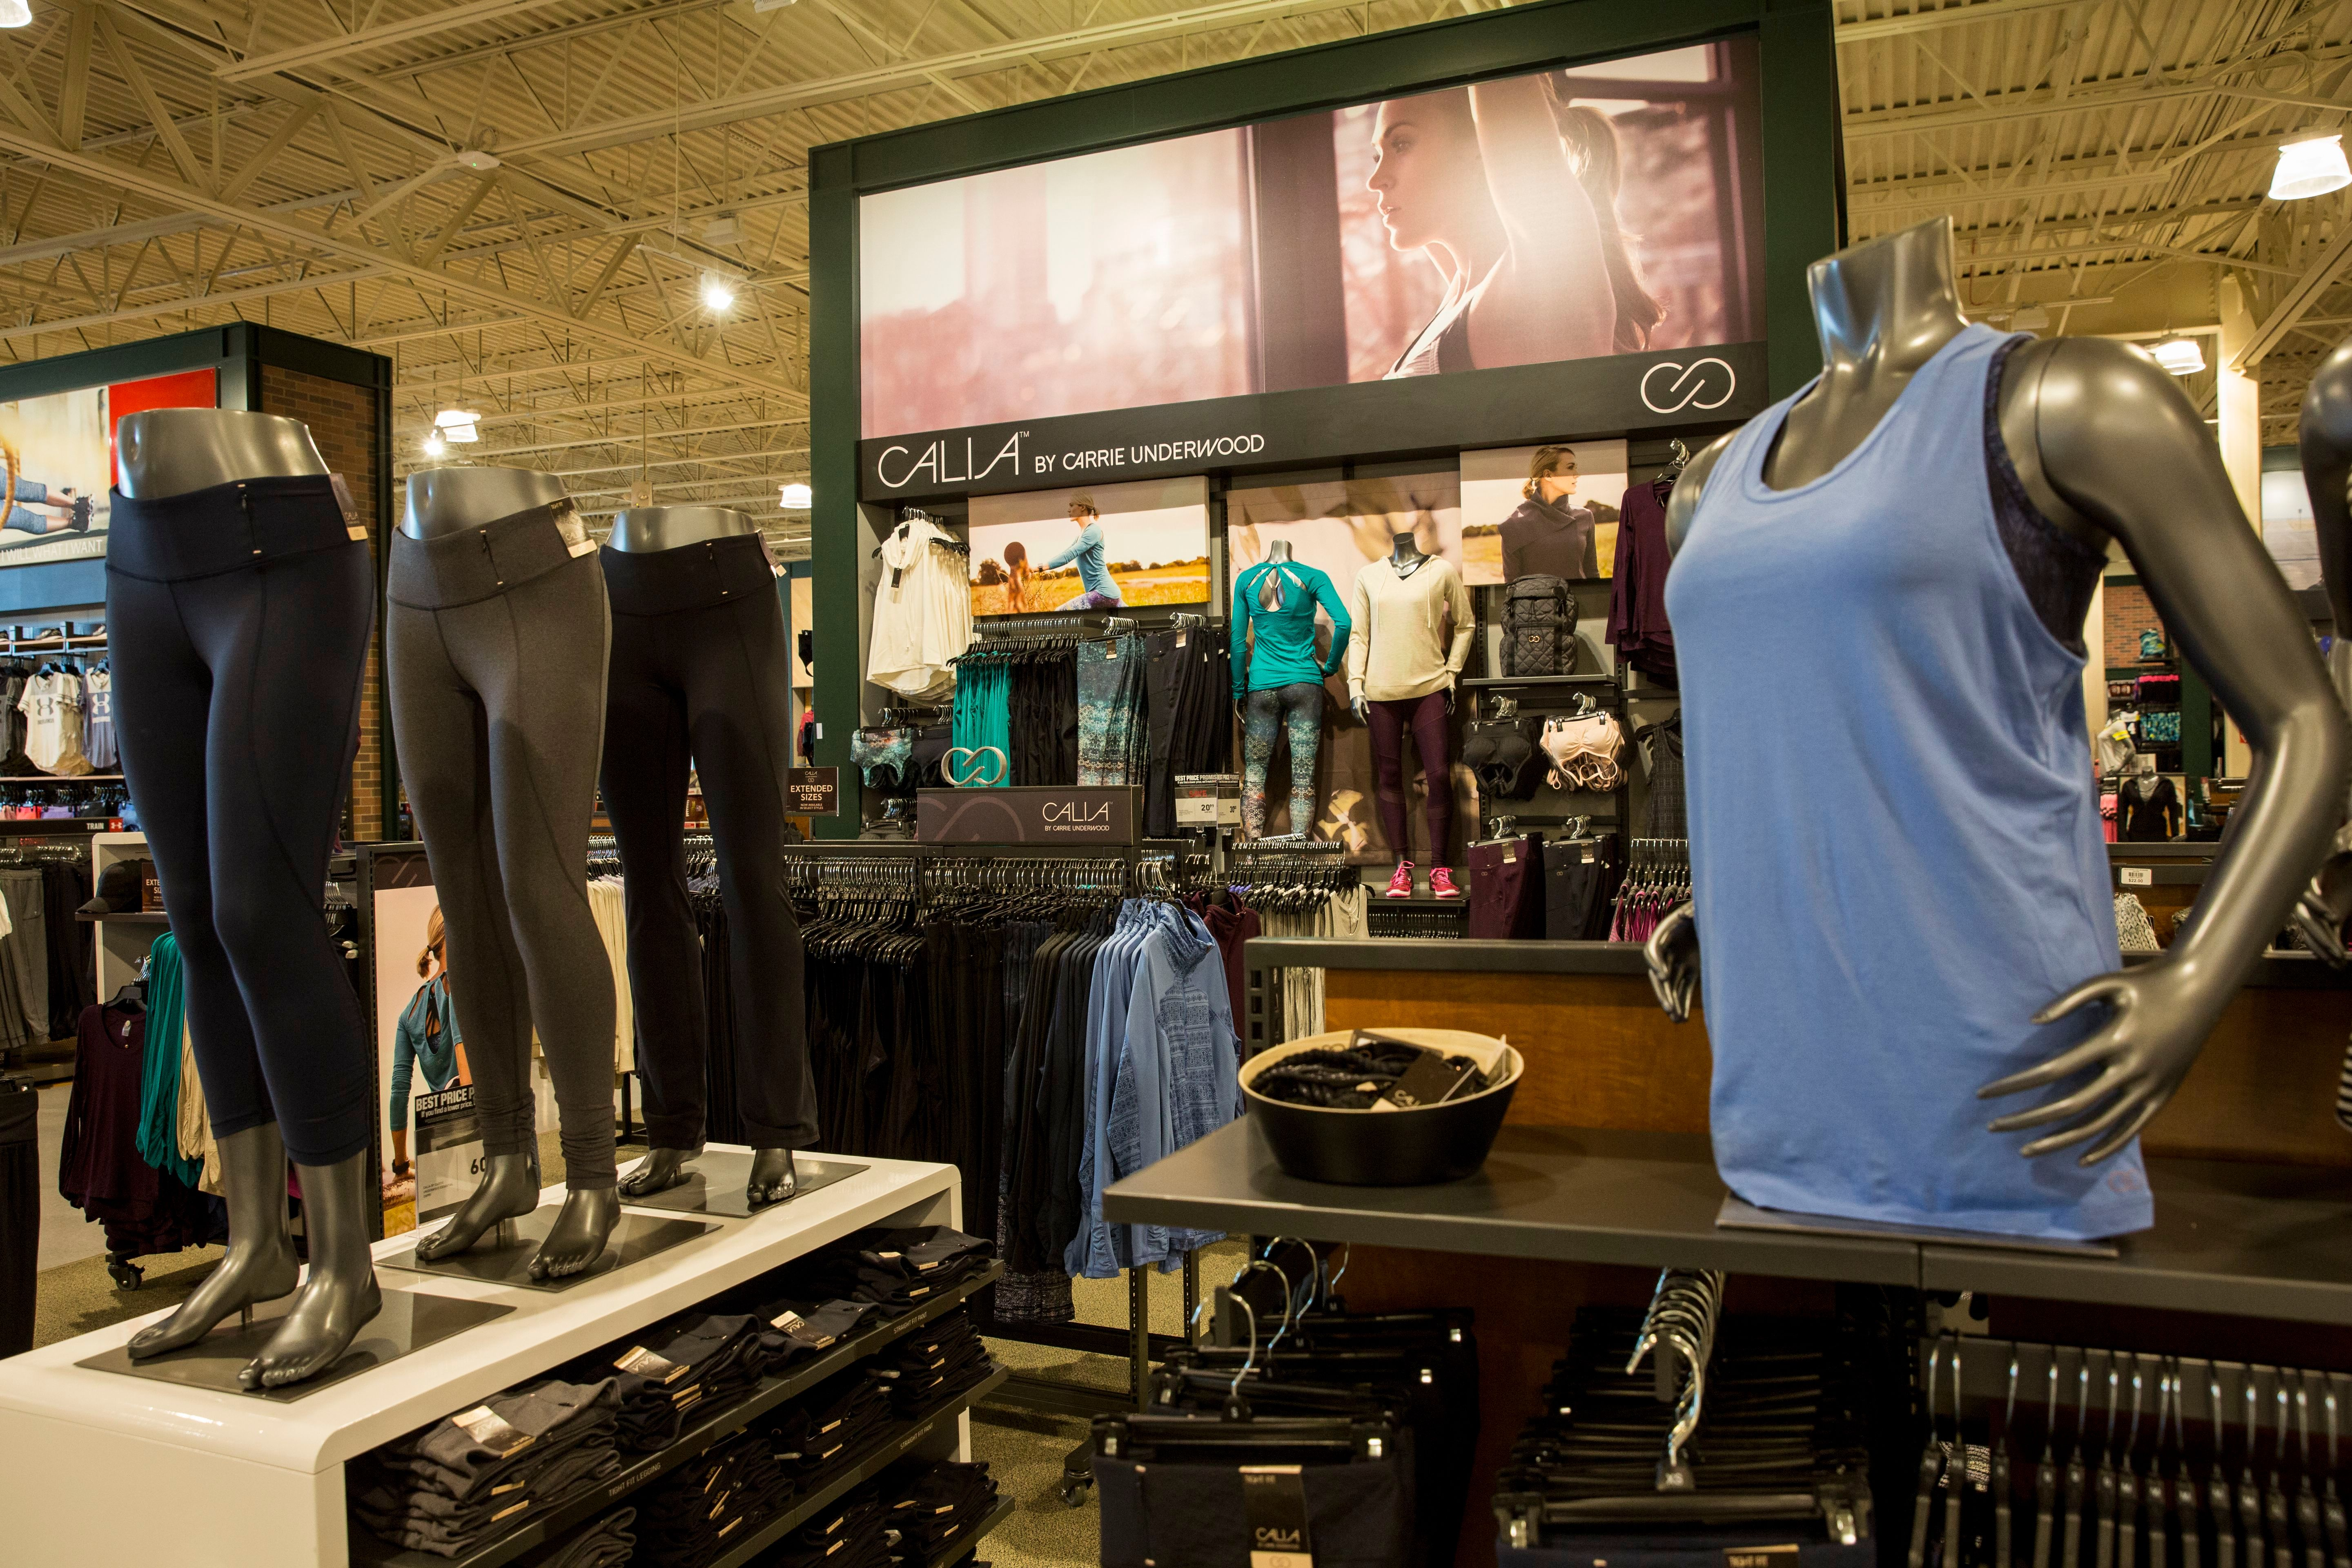 The CALIA by Carrie Underwood shop at the new DICK'S Sporting Goods store at Baybrook Mall in Friendswood, Texas on .? The store is one of six new locations now open for business in the Houston areaDICK'S Sporting Goods Grand Opening Celebration, Houston, USA - 18 Oct 2016